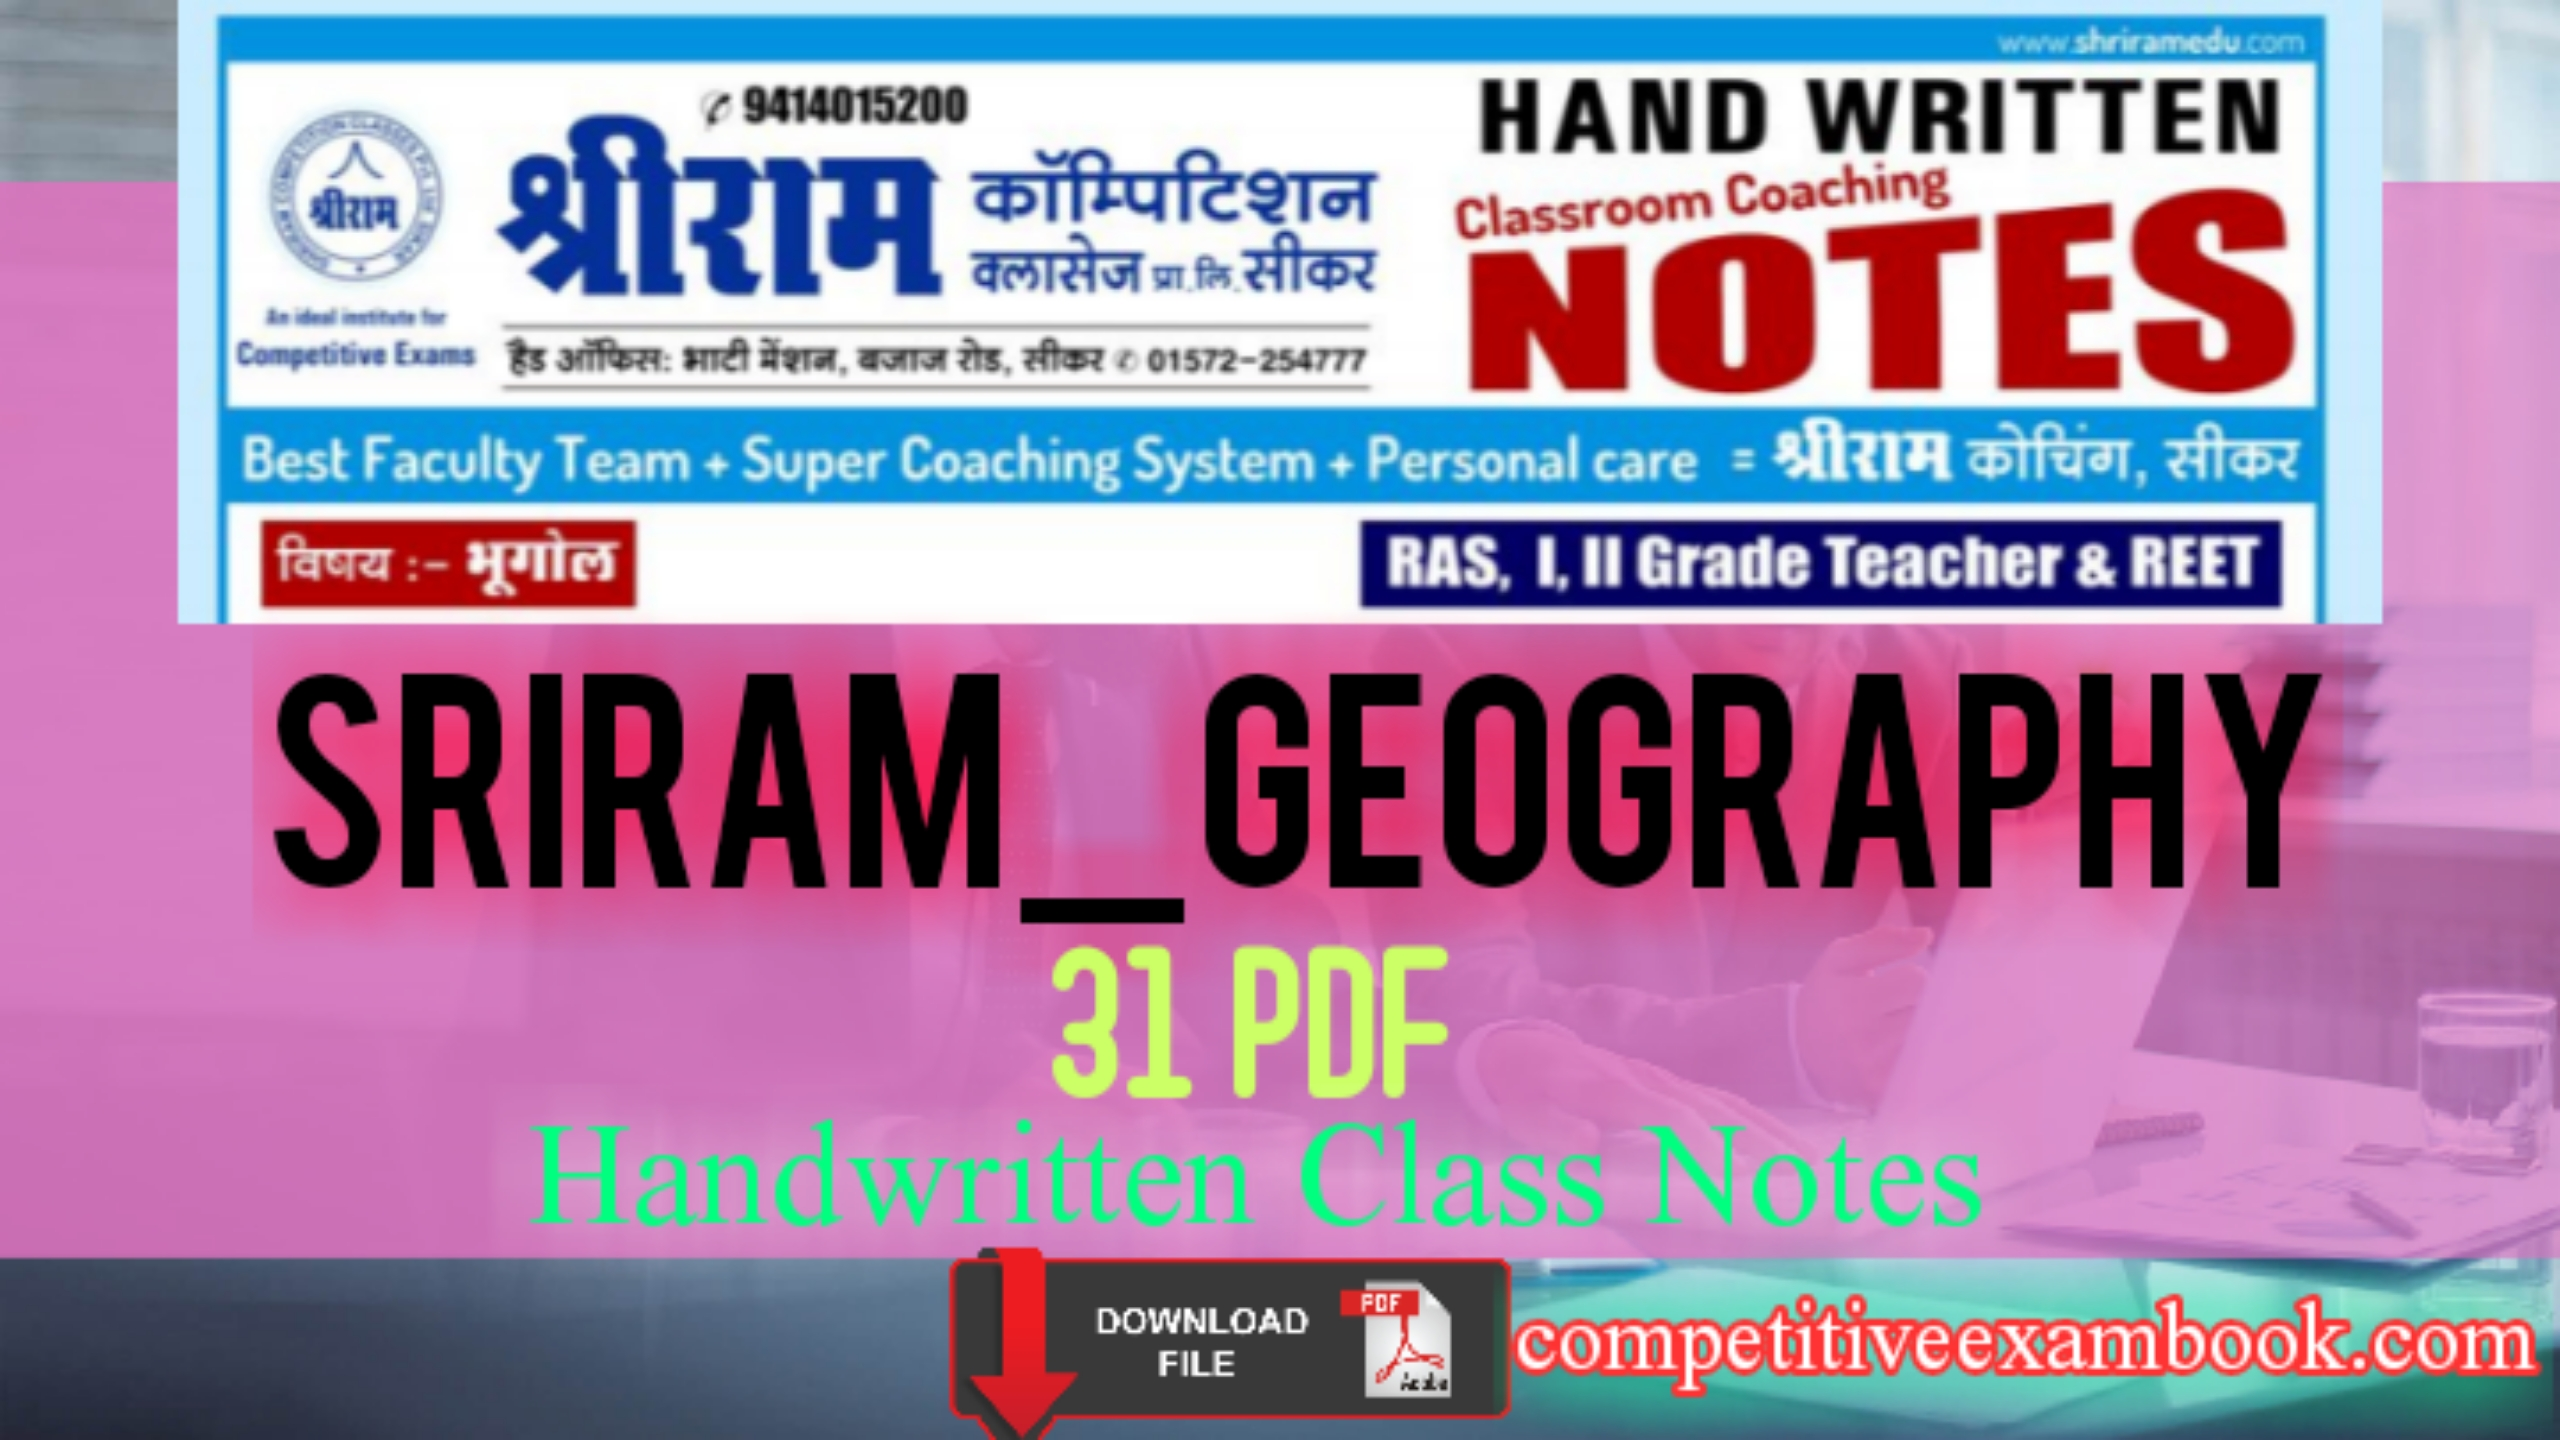 Sriram Booklet for GS Geography Prelims+Mains Download - xaam.in